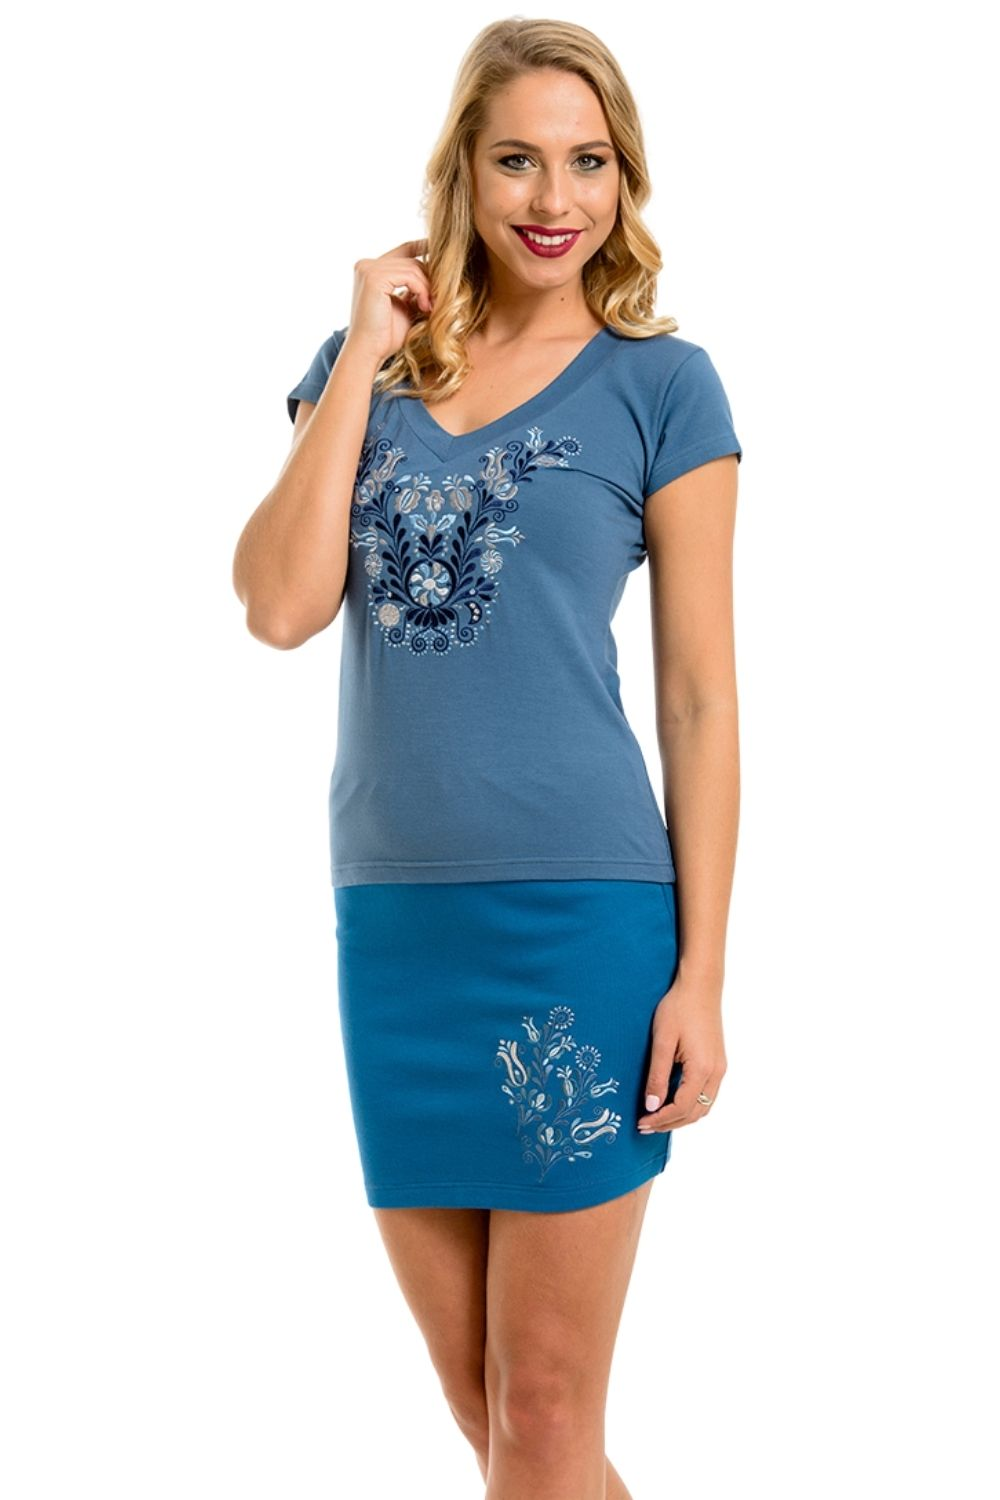 Jaszsagi Embroidered Women's T-shirt SKY-Blue 'V' Neck at 3 Barn Swallows, $41.89